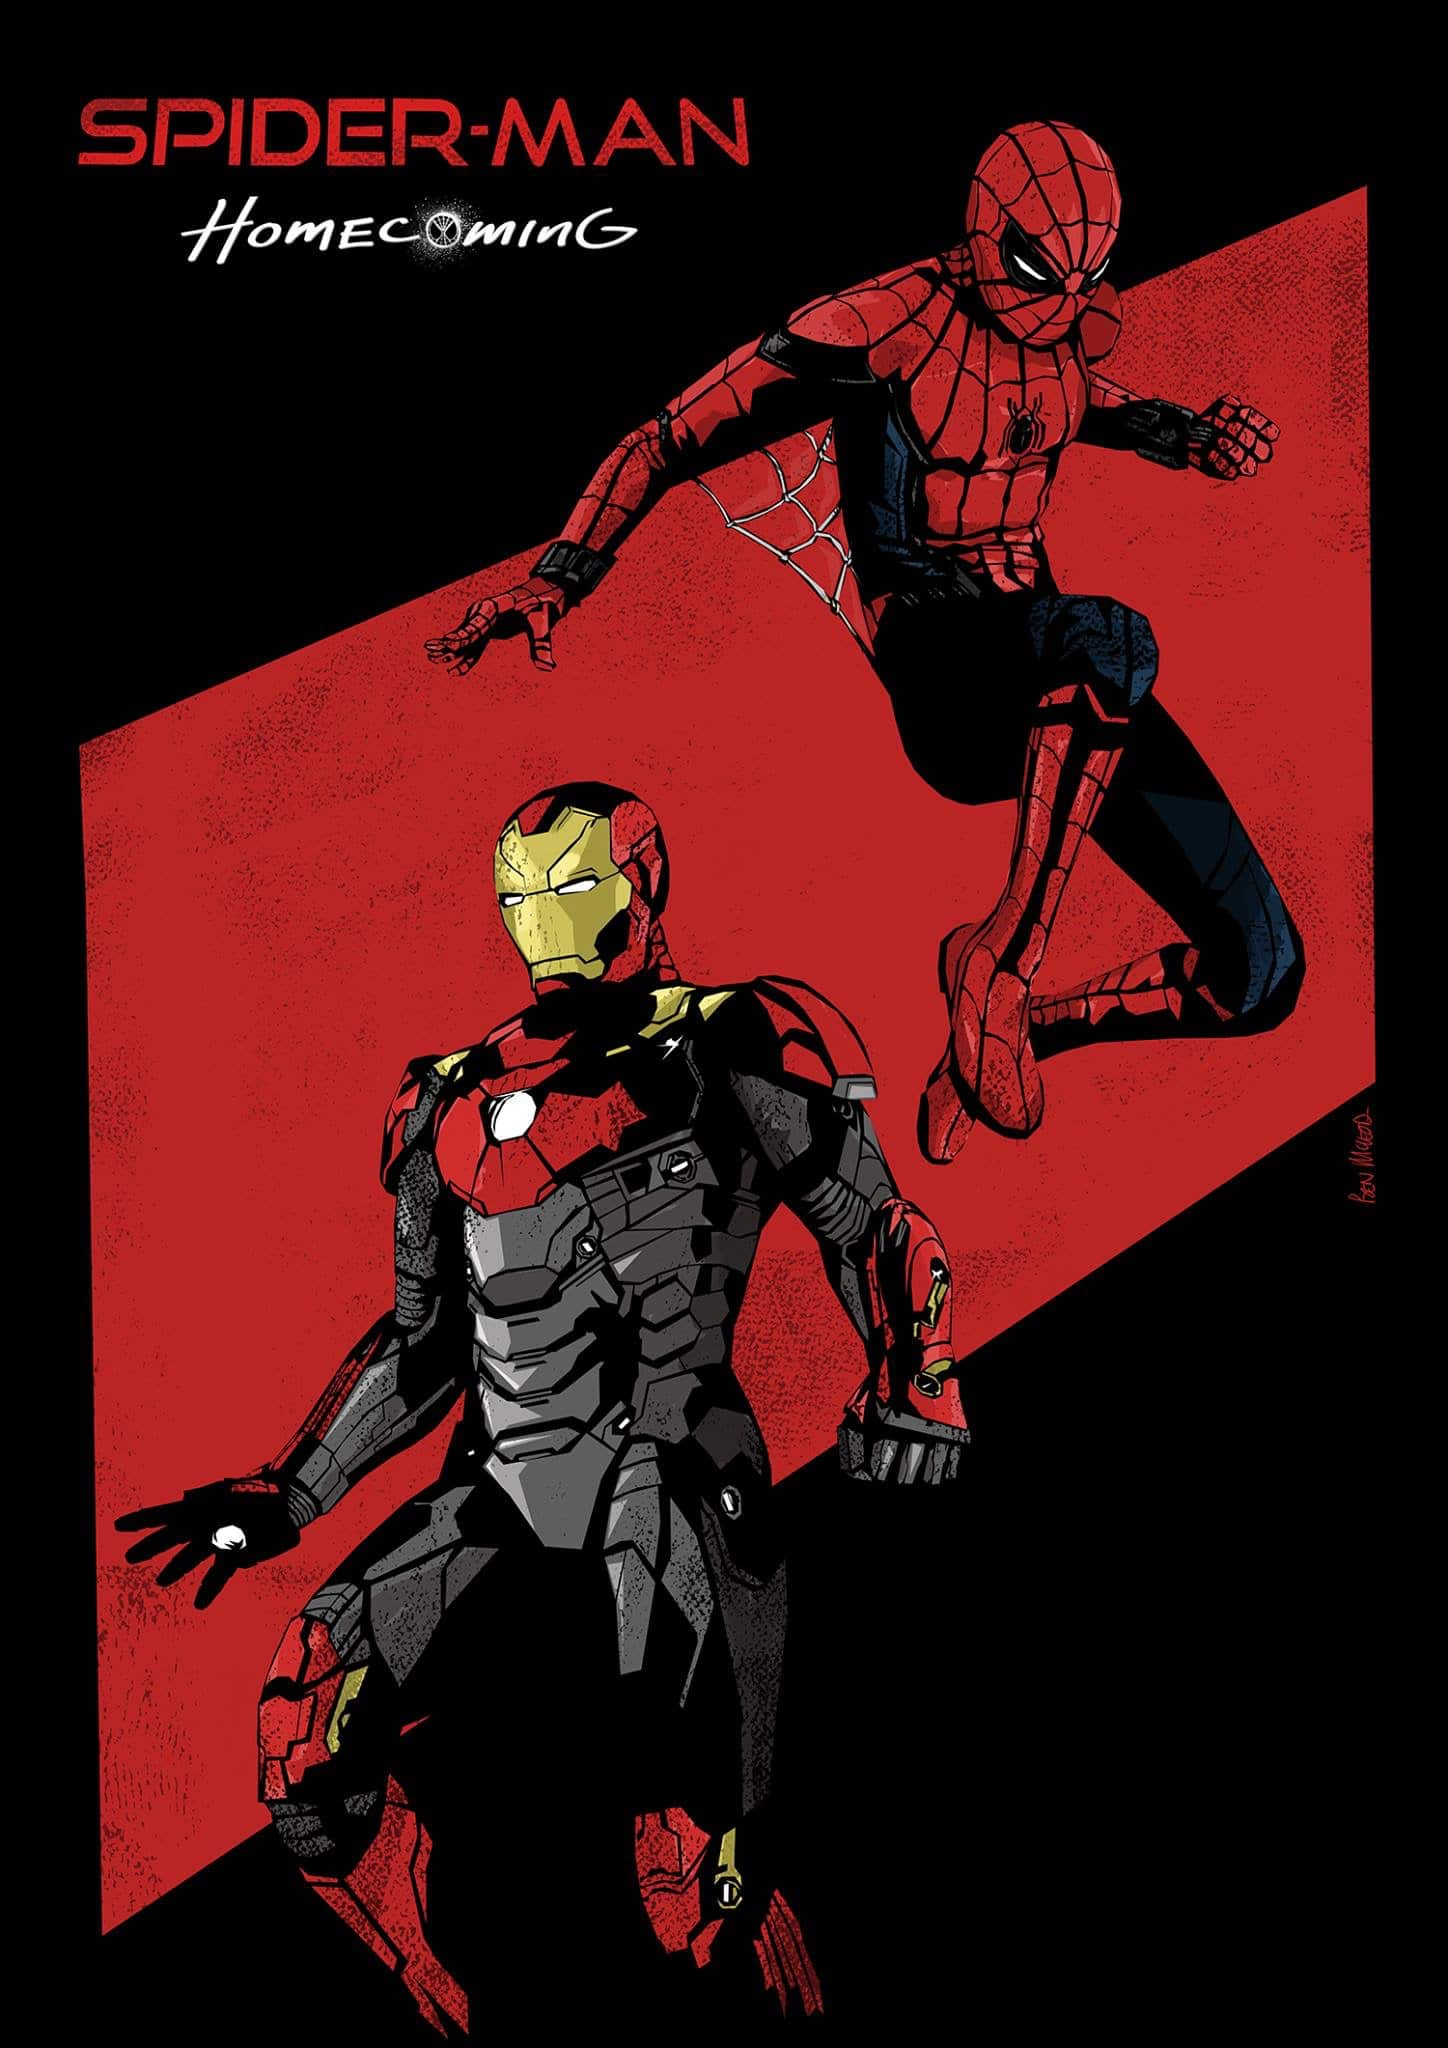 spiderman homecoming poster high quality HD printable wallpapers iron man and spiderman art animation cartoon